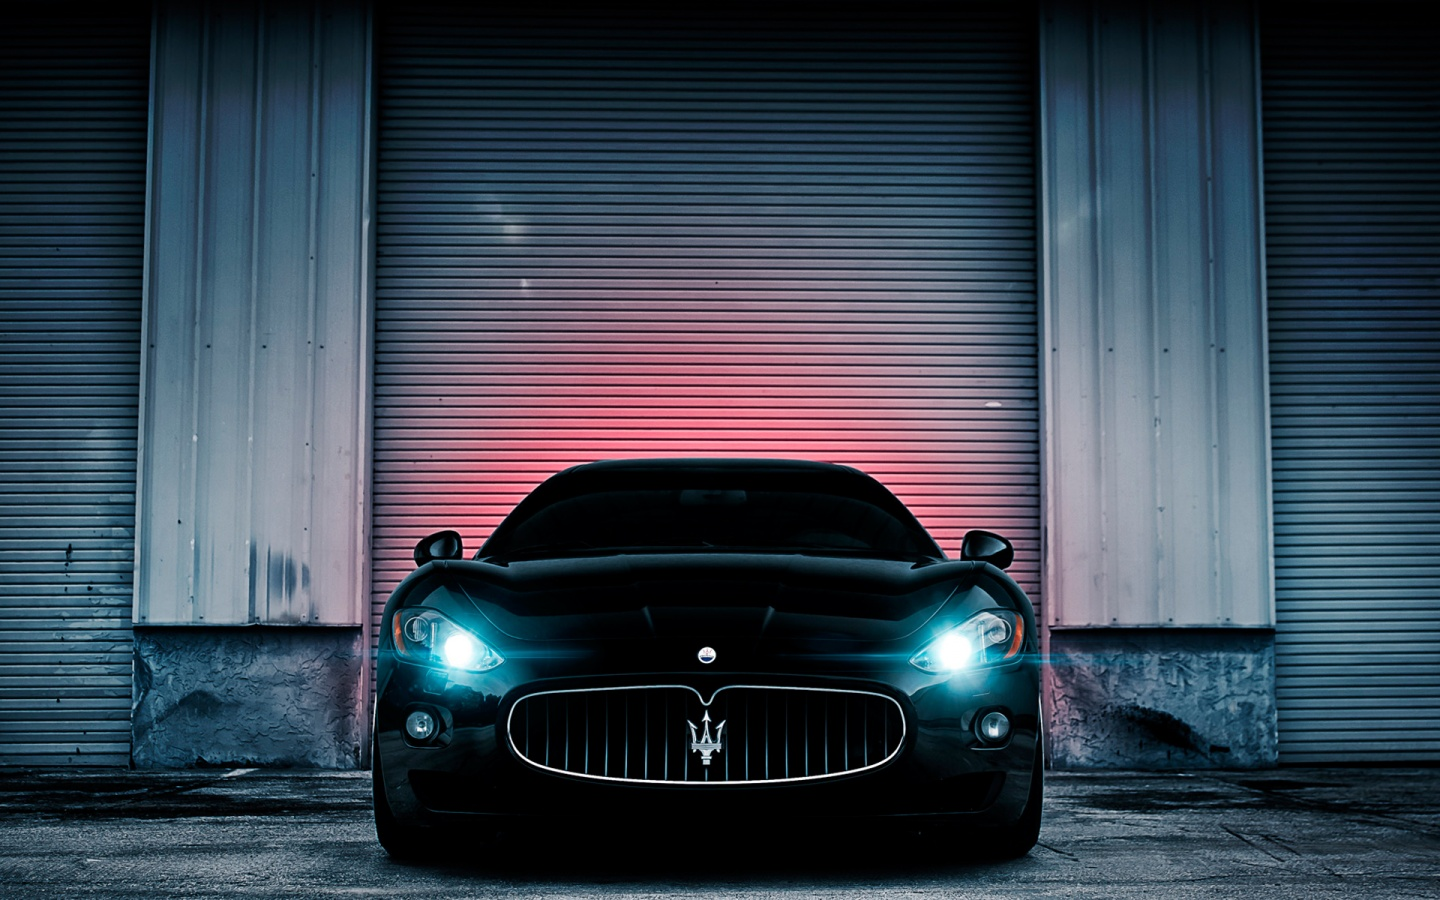 Maserati GT Wallpaper in 1440x900 Resolution 1440x900